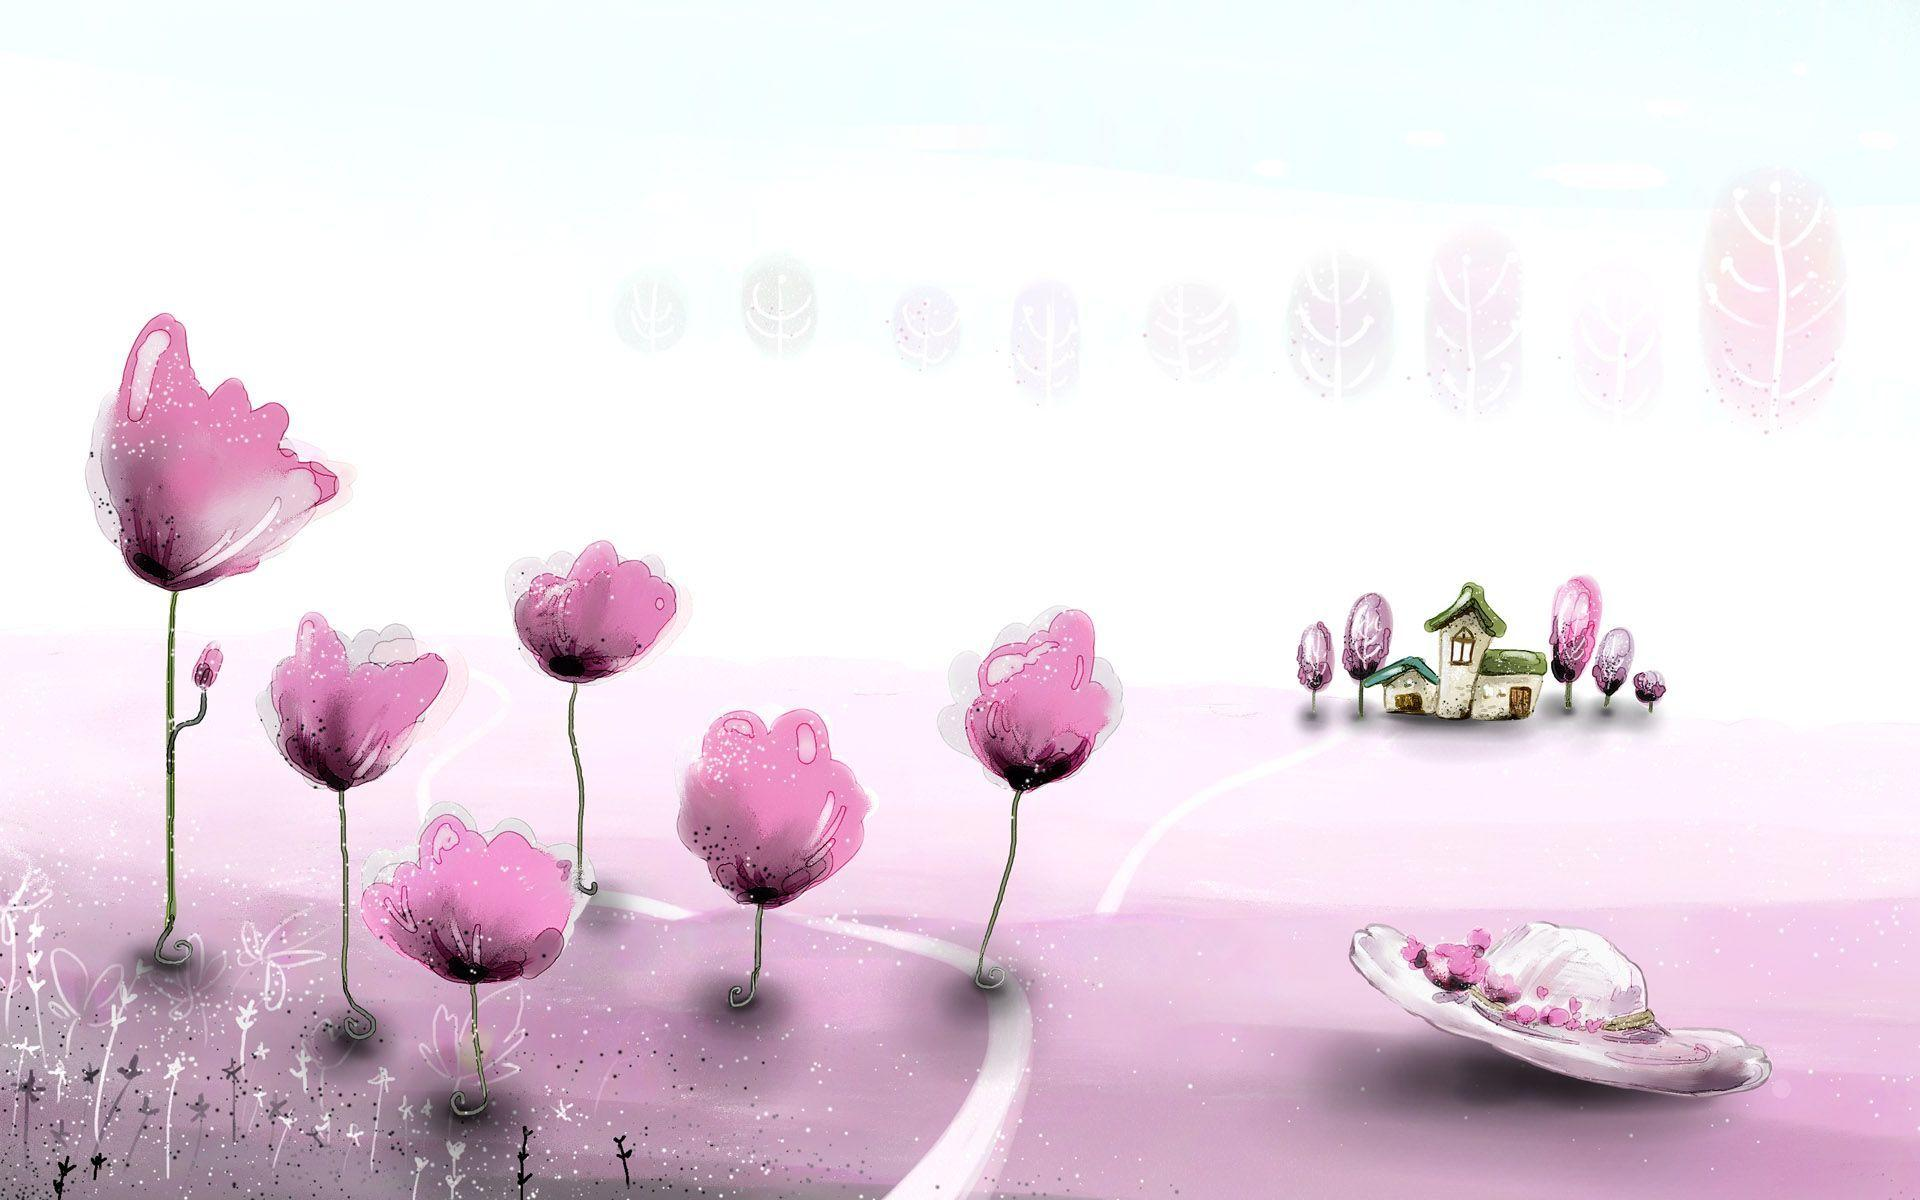 Cute Backgrounds Desktop